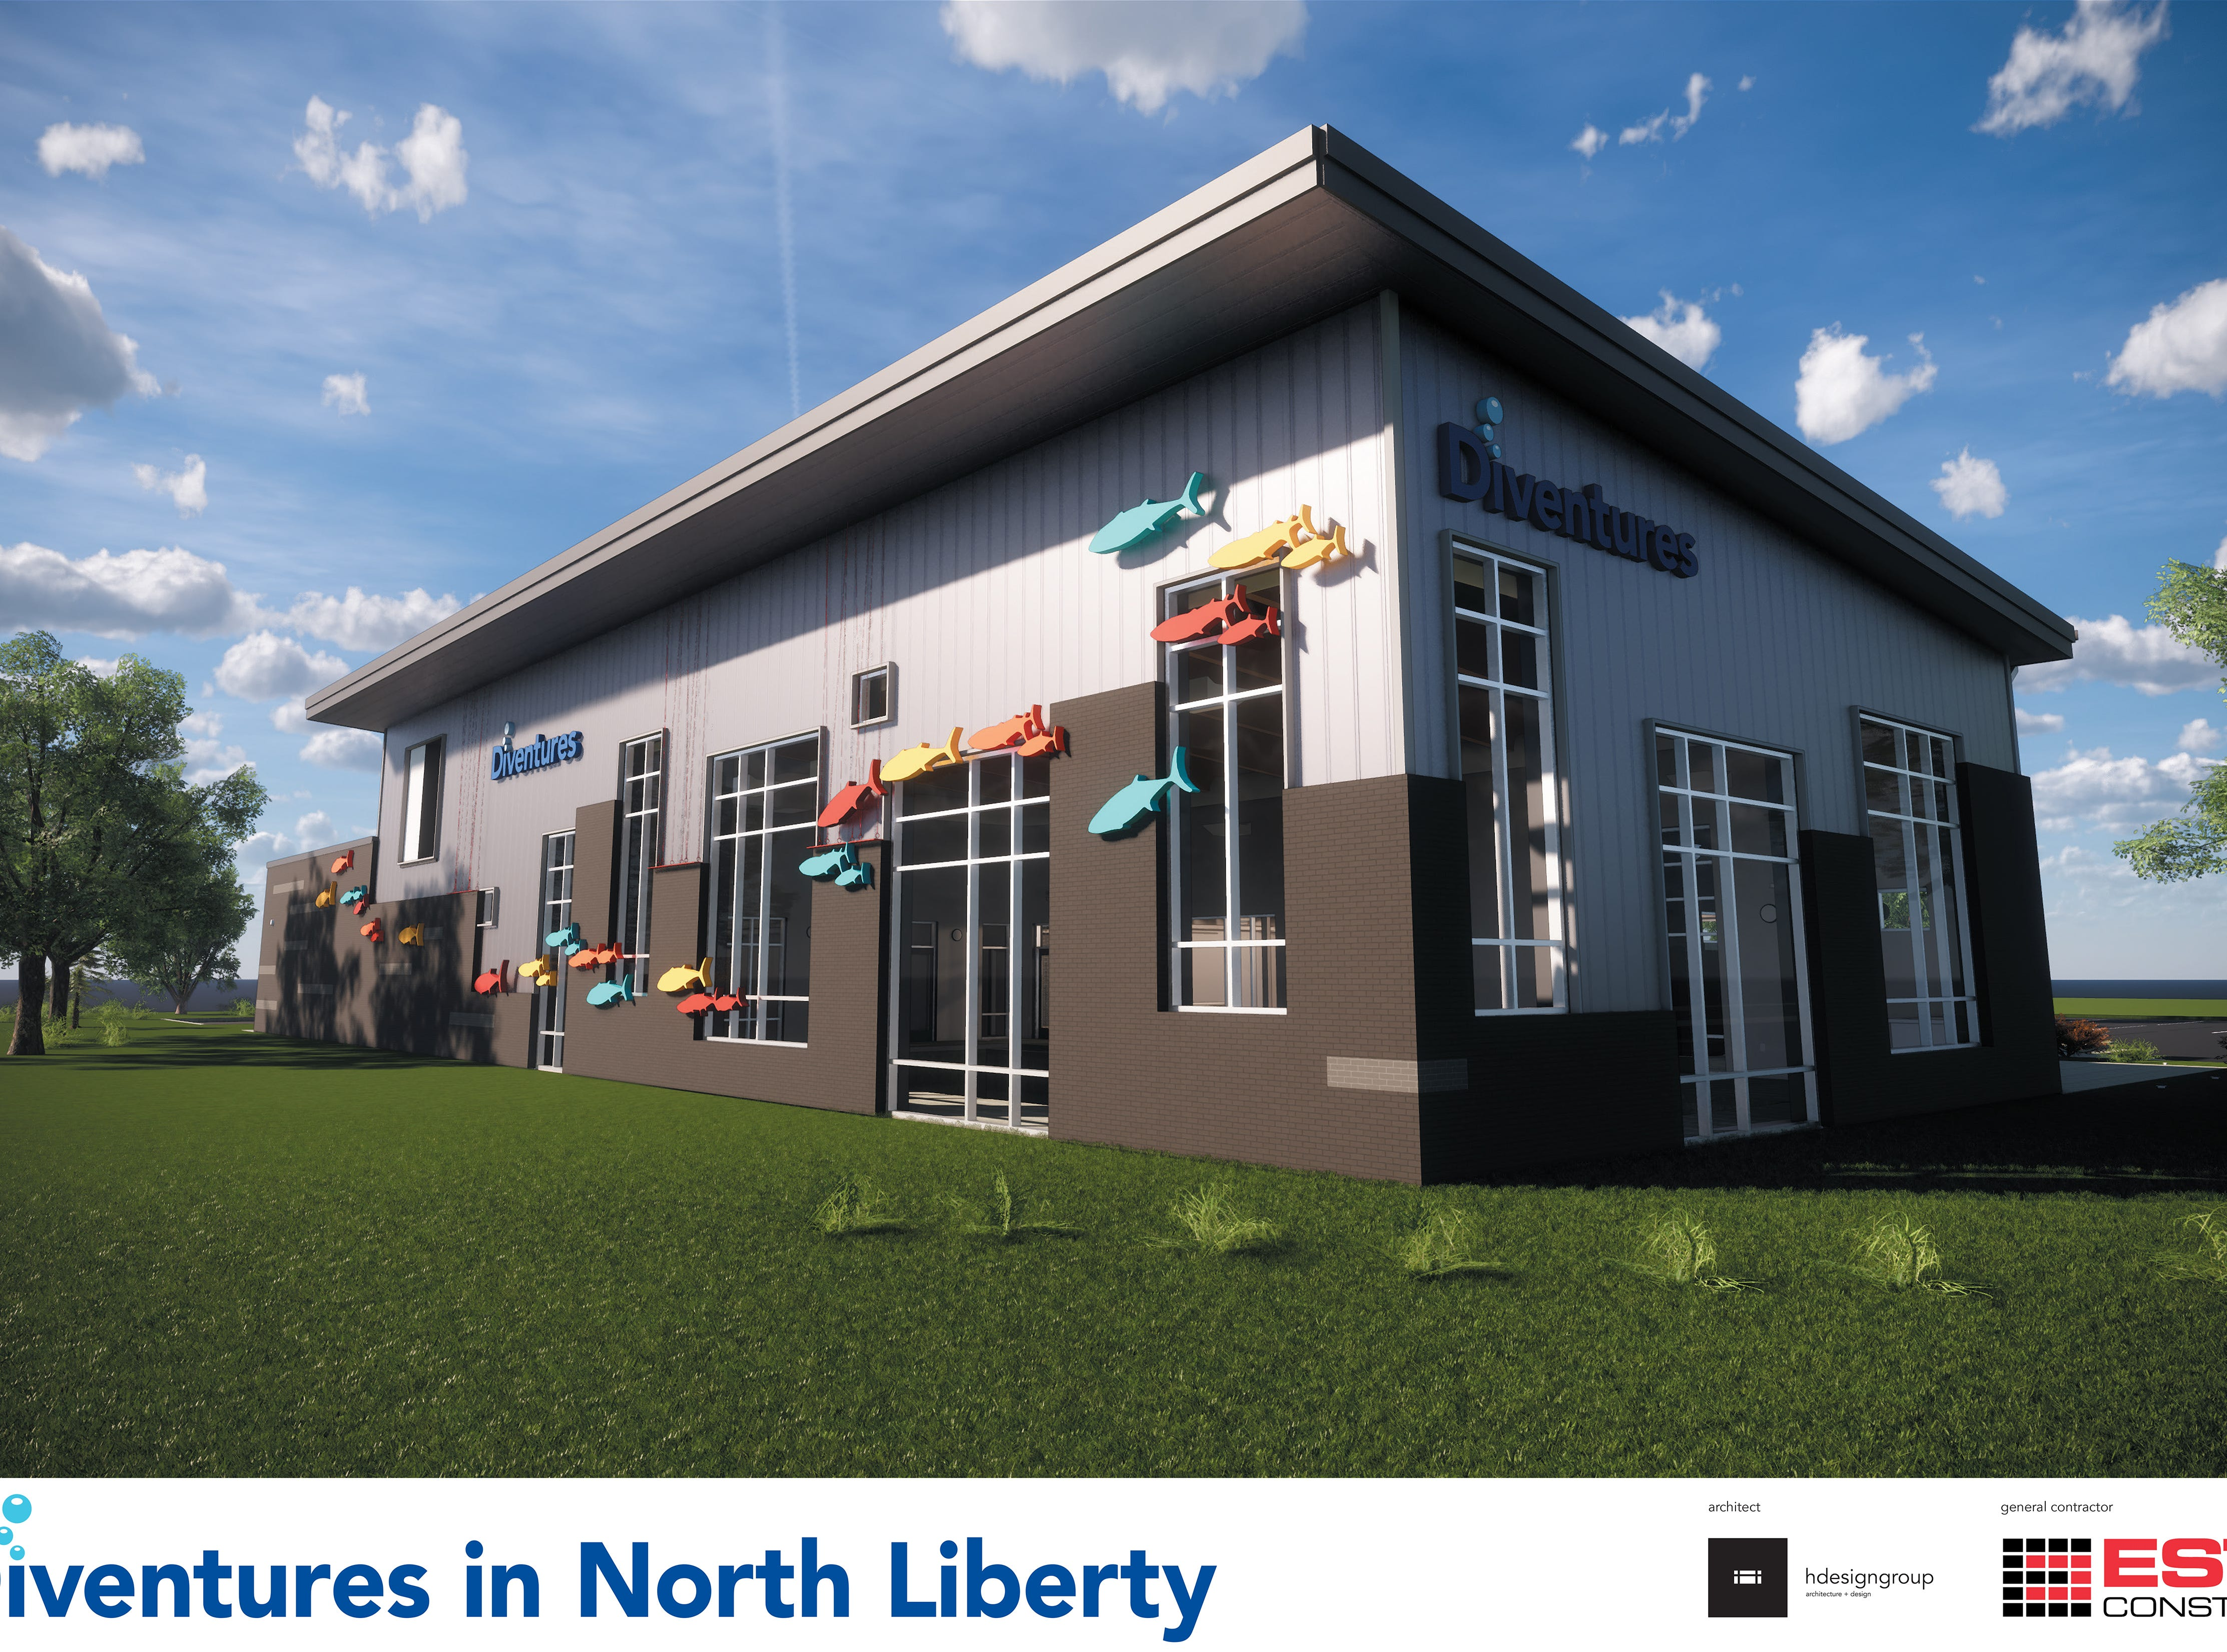 This 2019 rendering provided by Diventures shows the north-east side of its new location at 1895 West Penn Street in North Liberty, Iowa.